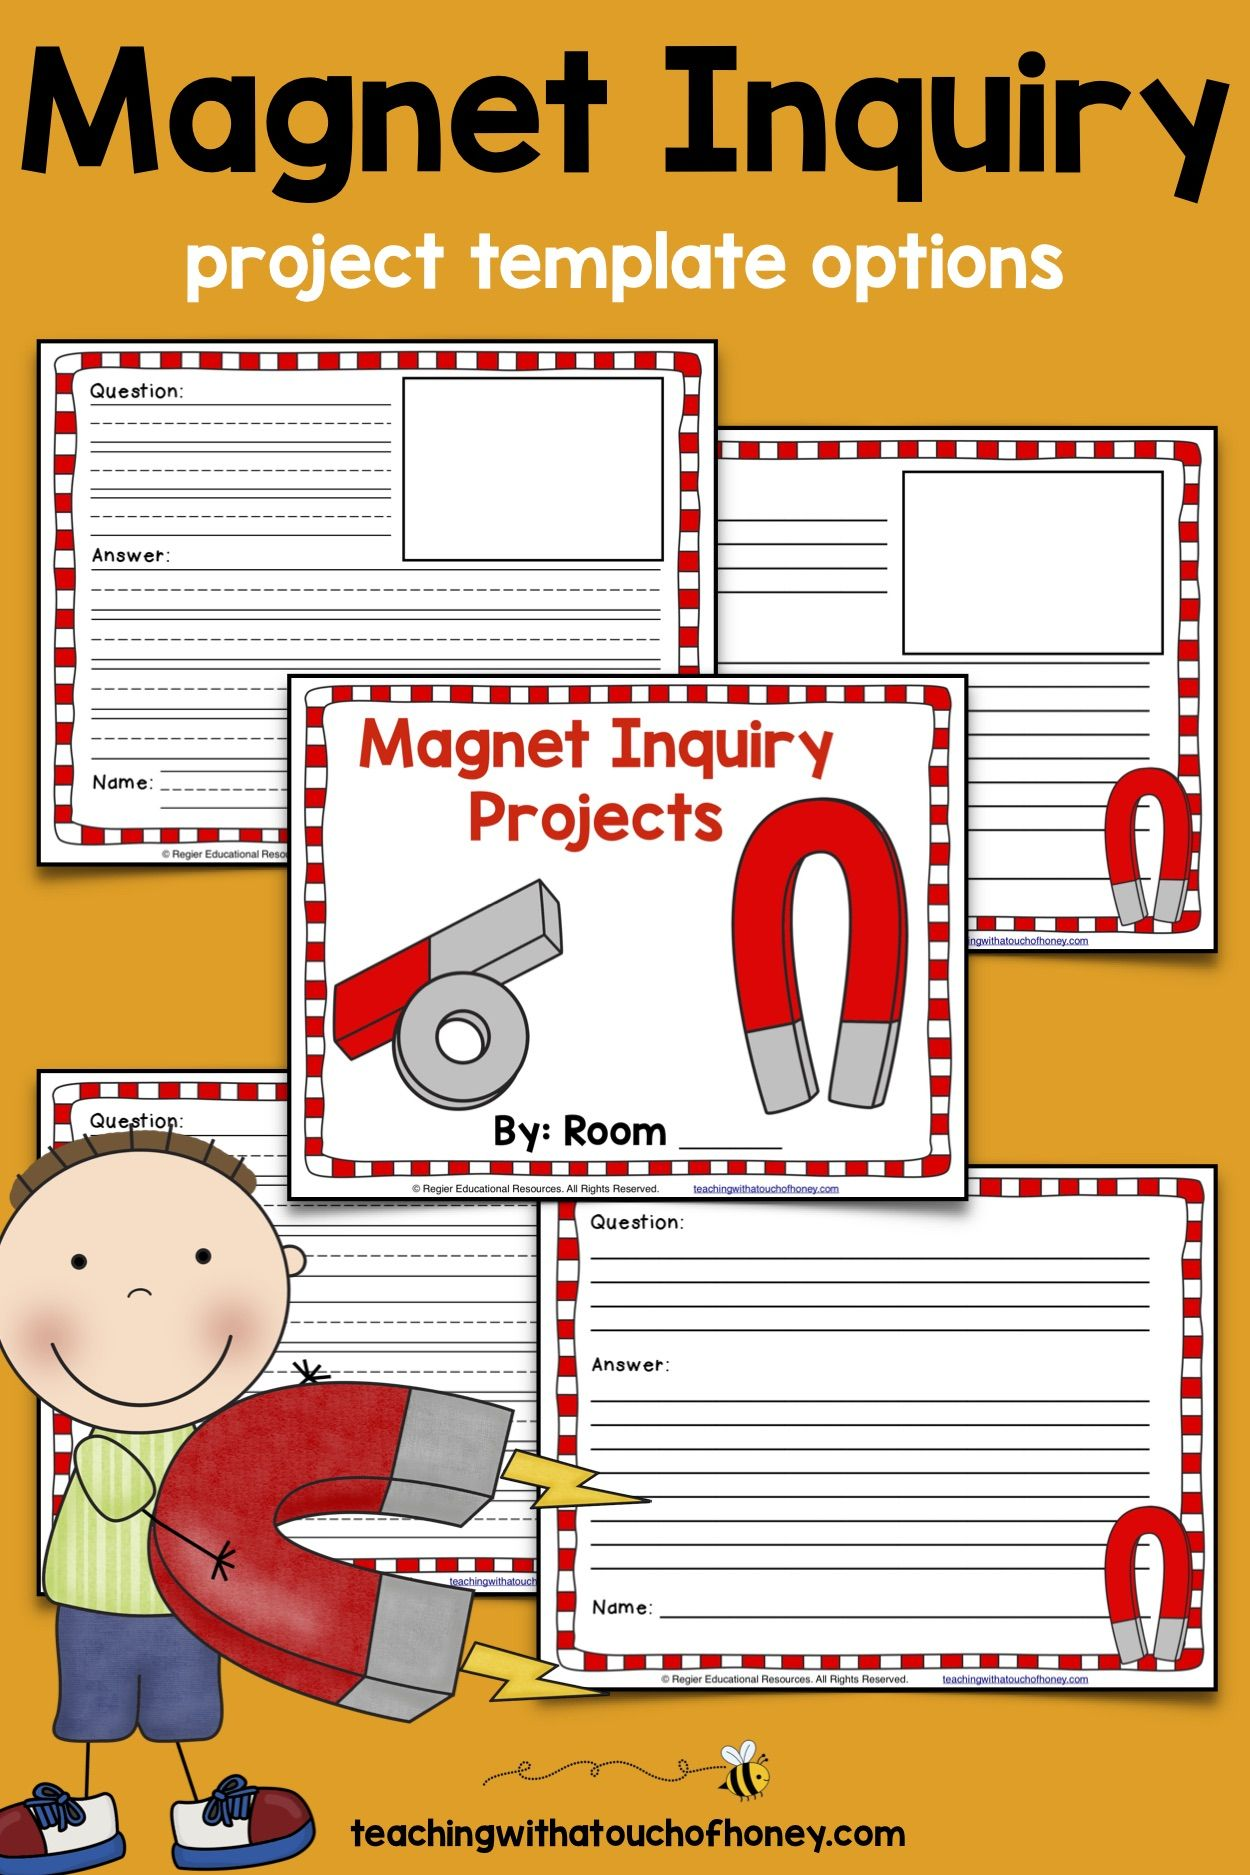 Magnet Inquiry Process Questions and Templates   Kindergarten worksheets [ 1875 x 1250 Pixel ]